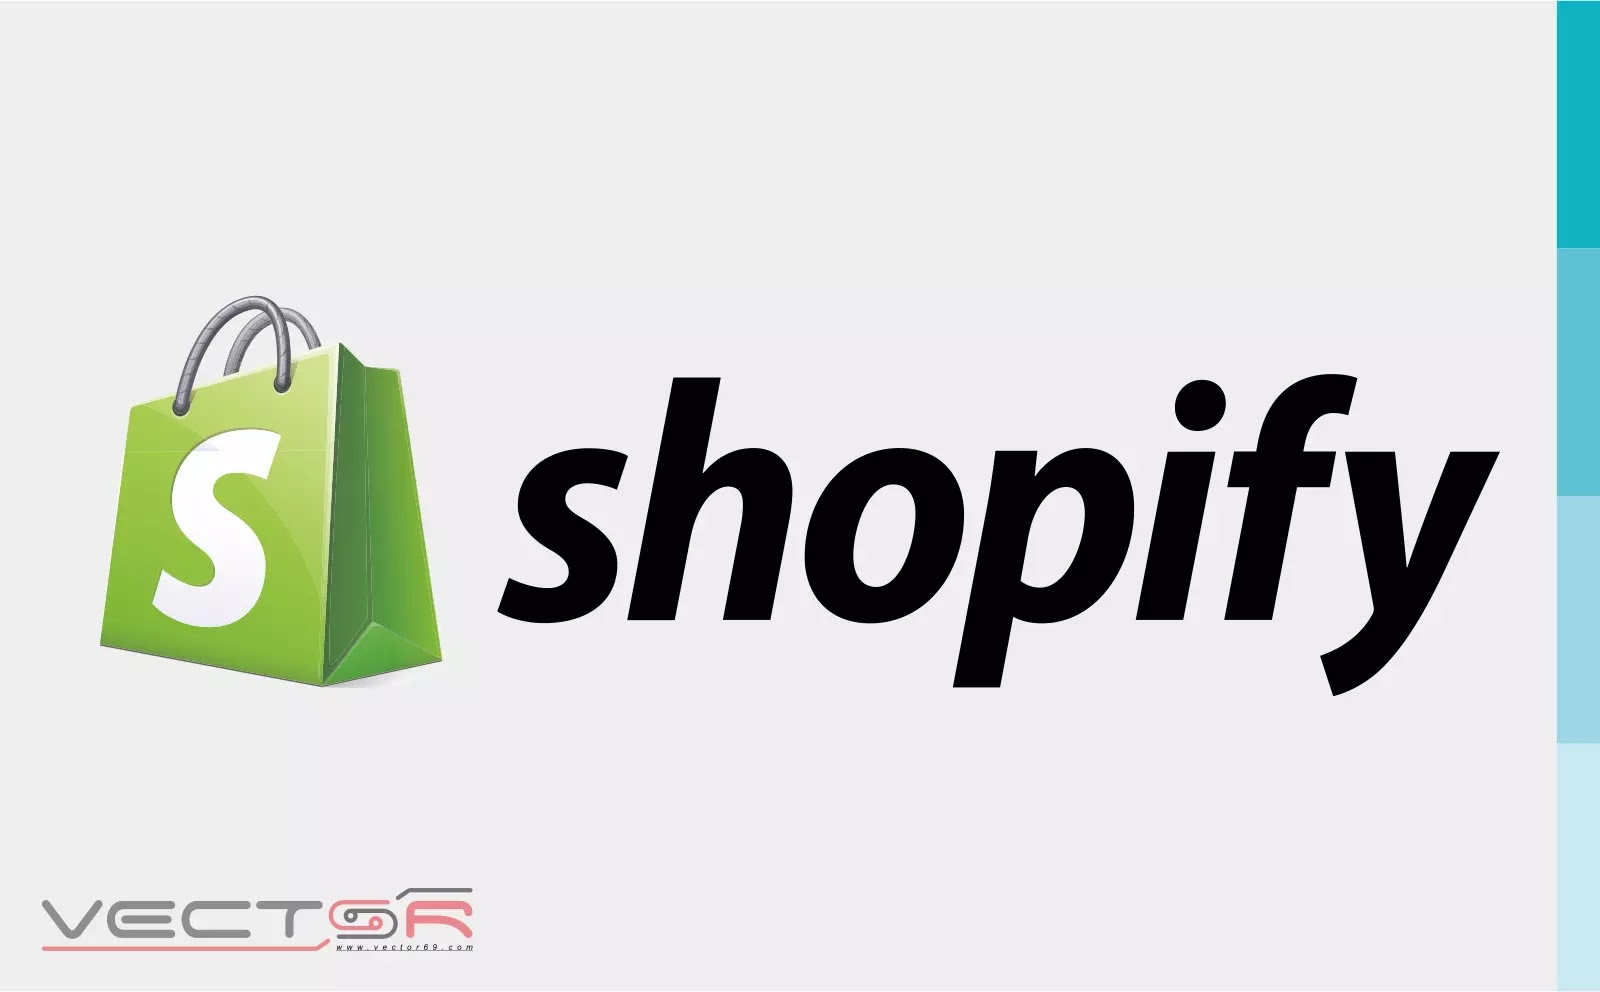 Shopify (2006) 3D Logo - Download Vector File SVG (Scalable Vector Graphics)